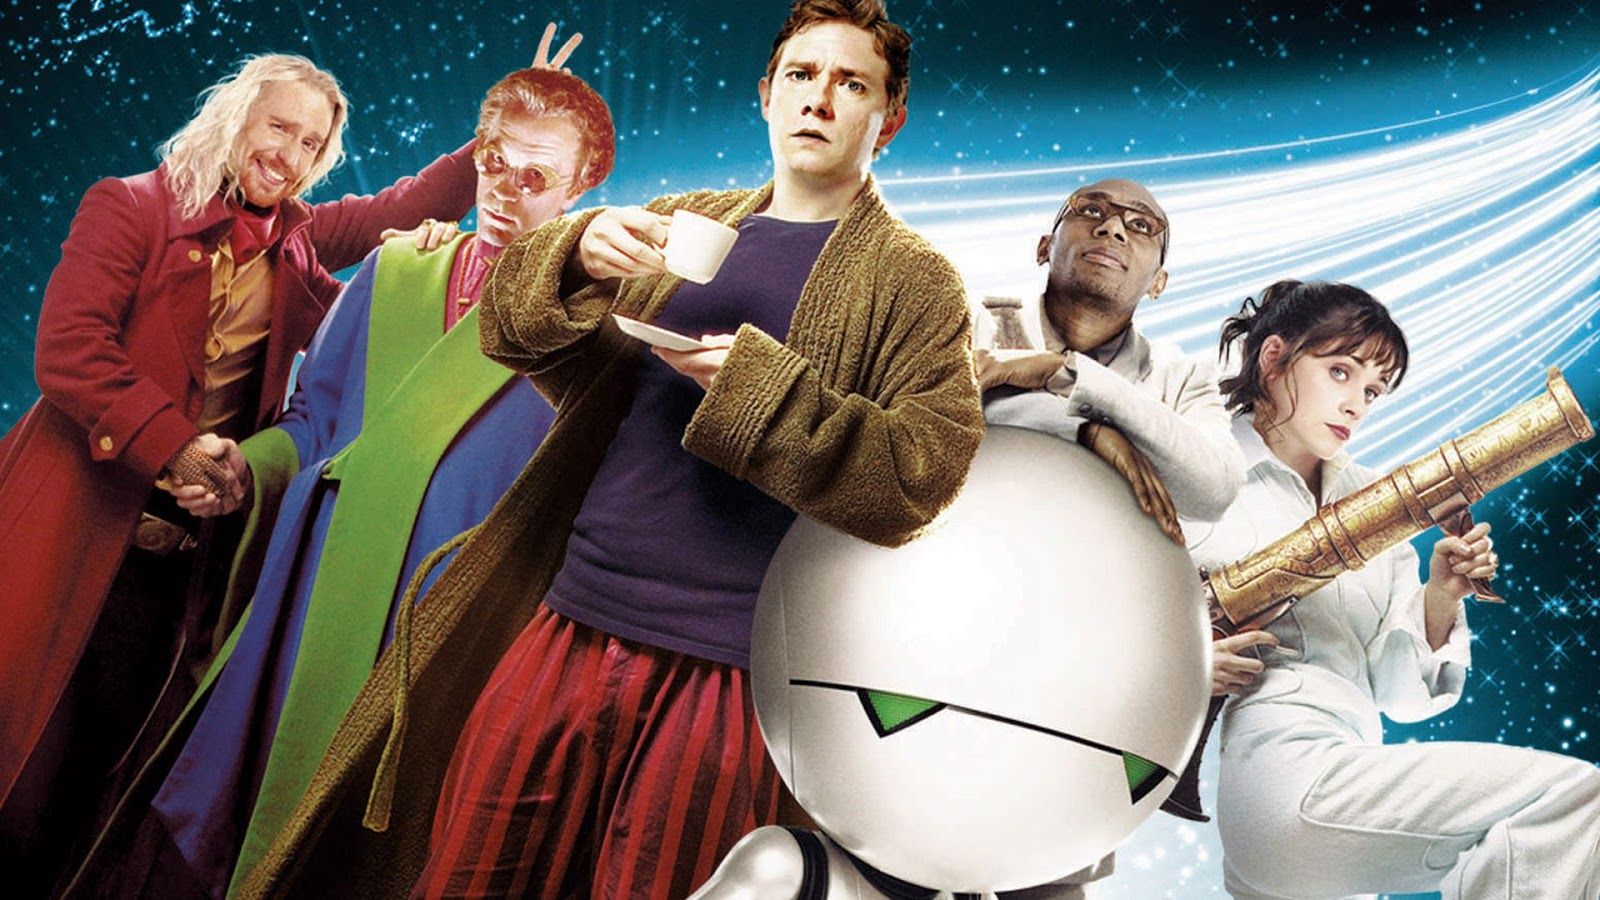 Hitchhiker's guide to the galaxy book review | readers lane.